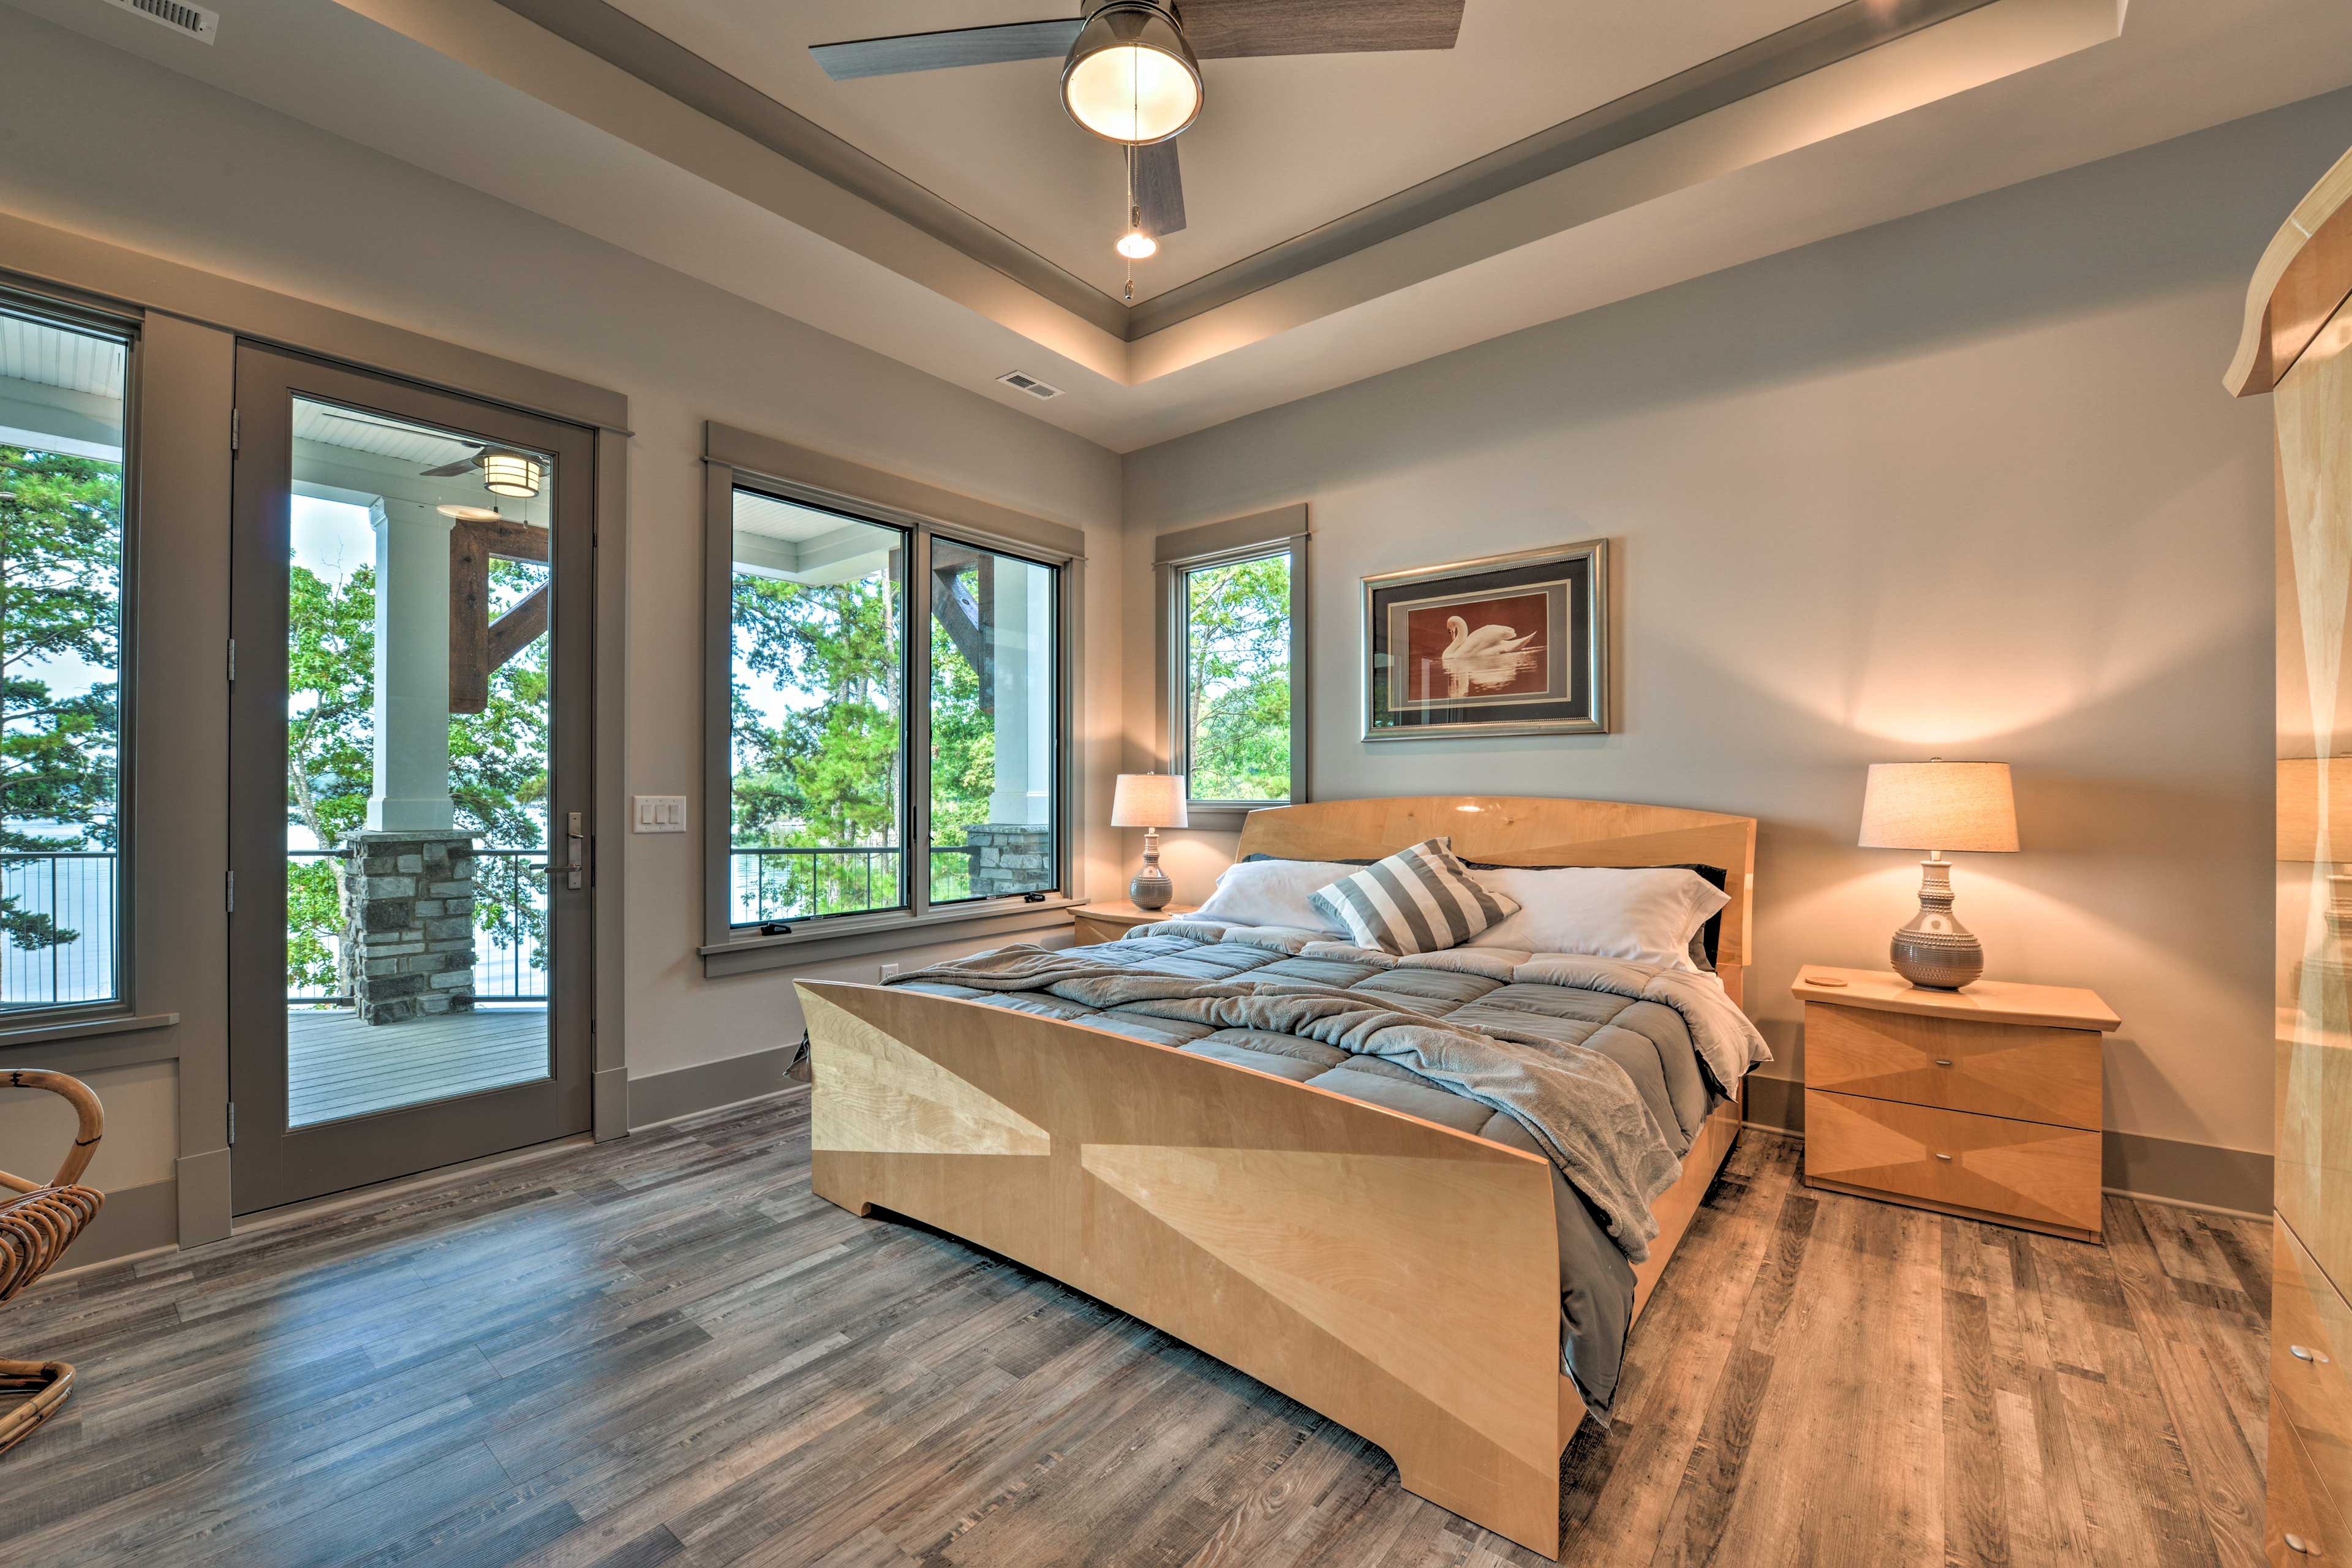 The first master bedroom features a king-sized bed and access to the deck.